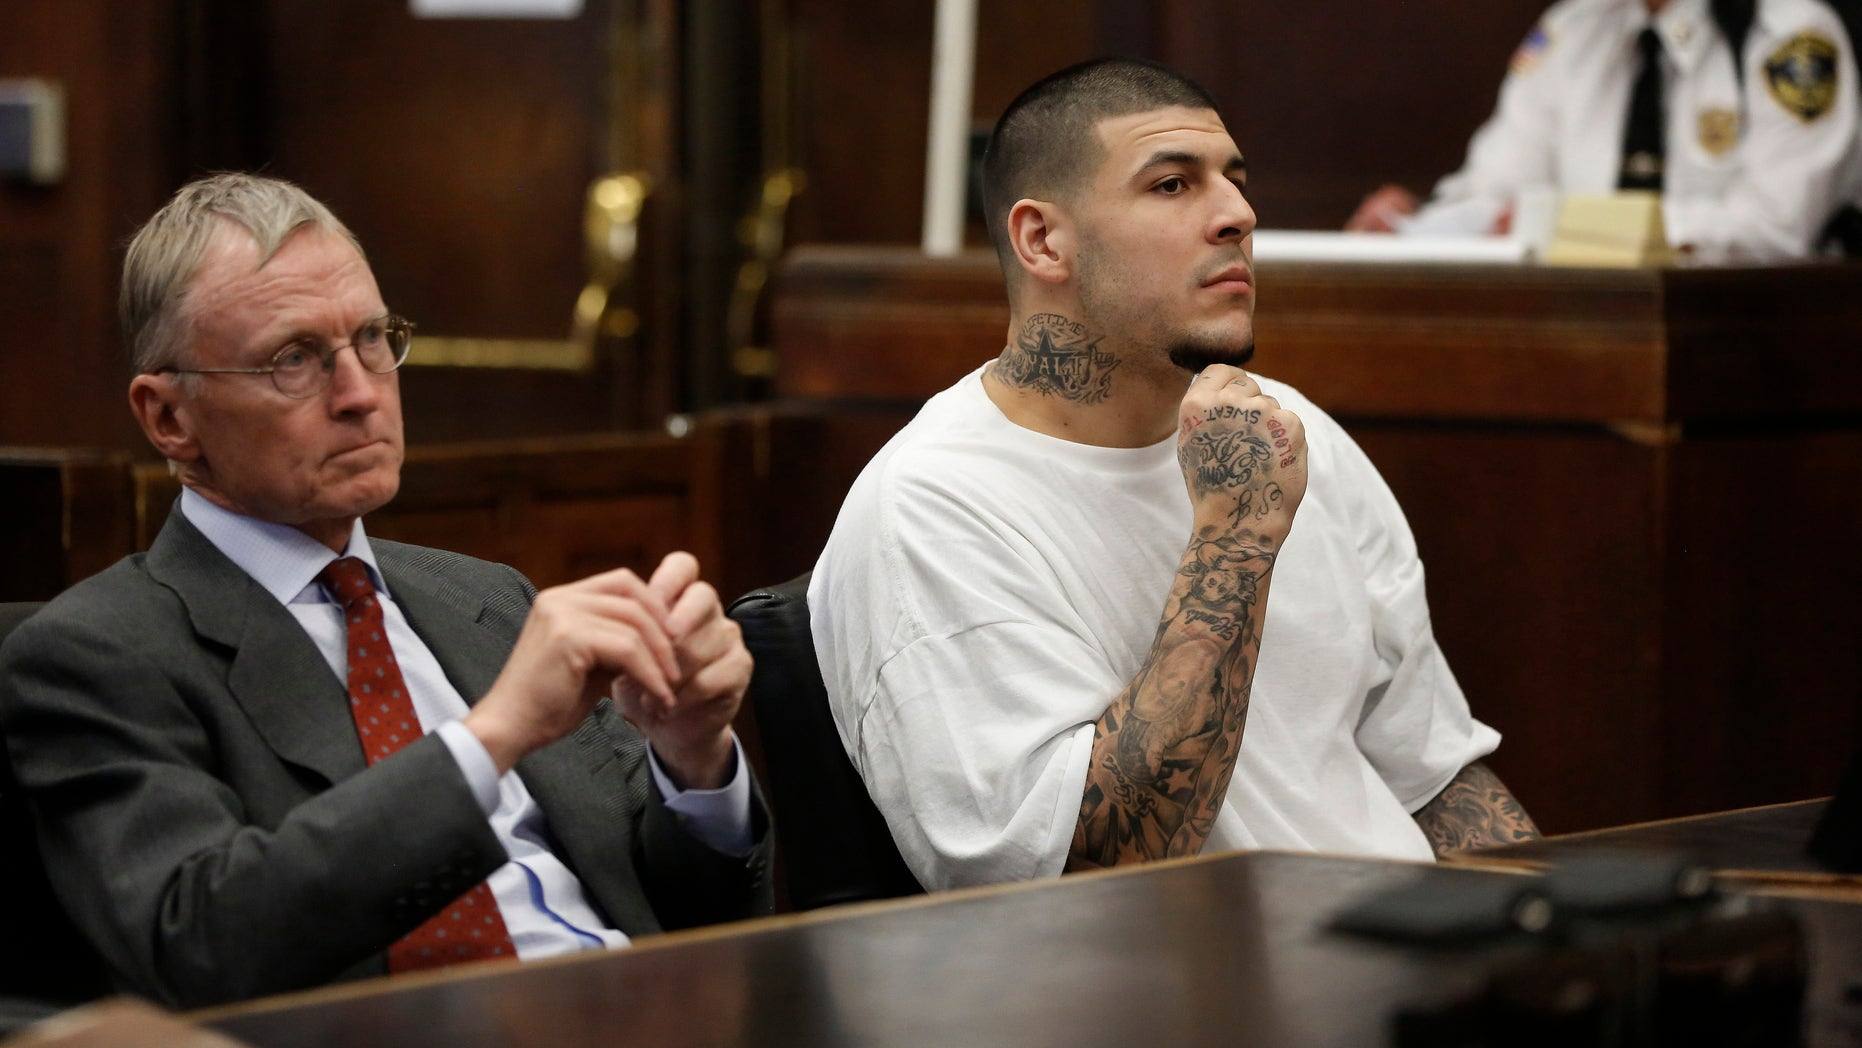 Former New England Patriots NFL football player Aaron Hernandez, center, sits with defense attorney Charles Rankin, left, while attending a pre-trial hearing at Suffolk Superior Court, Tuesday, Dec. 22, 2015, in Boston. Hernandez is charged with killing two Boston men in 2012 after a chance encounter at a nightclub. (AP Photo/Steven Senne, Pool)